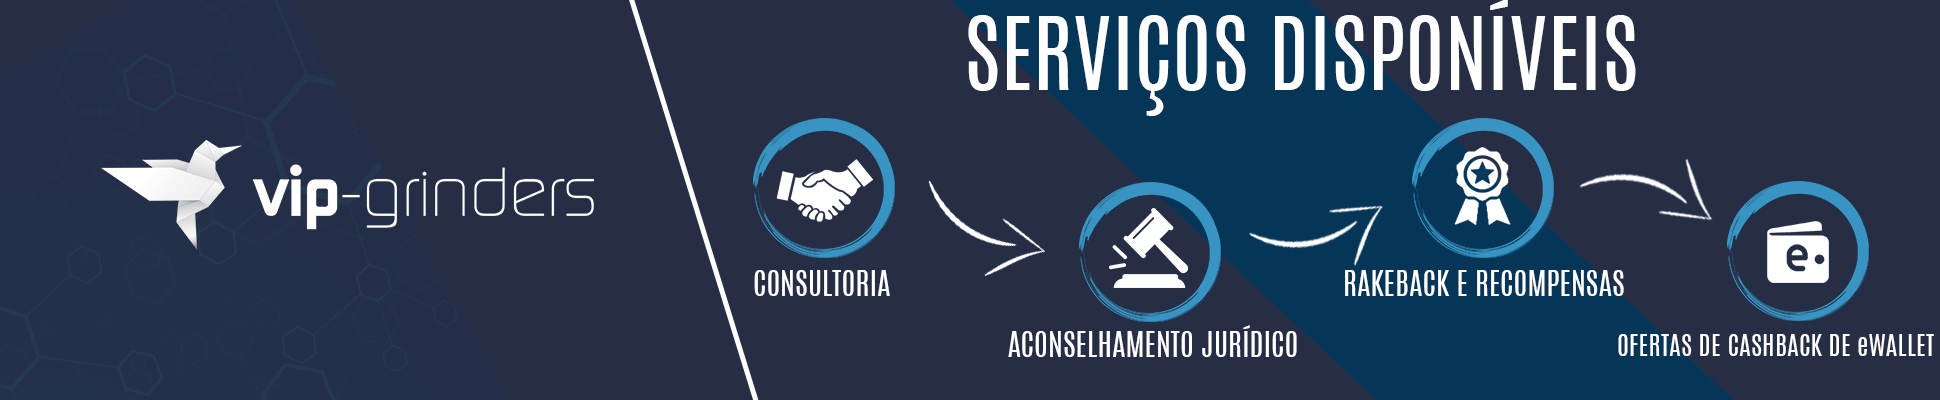 Player-Services-New-Banner-1940x400-Brasil